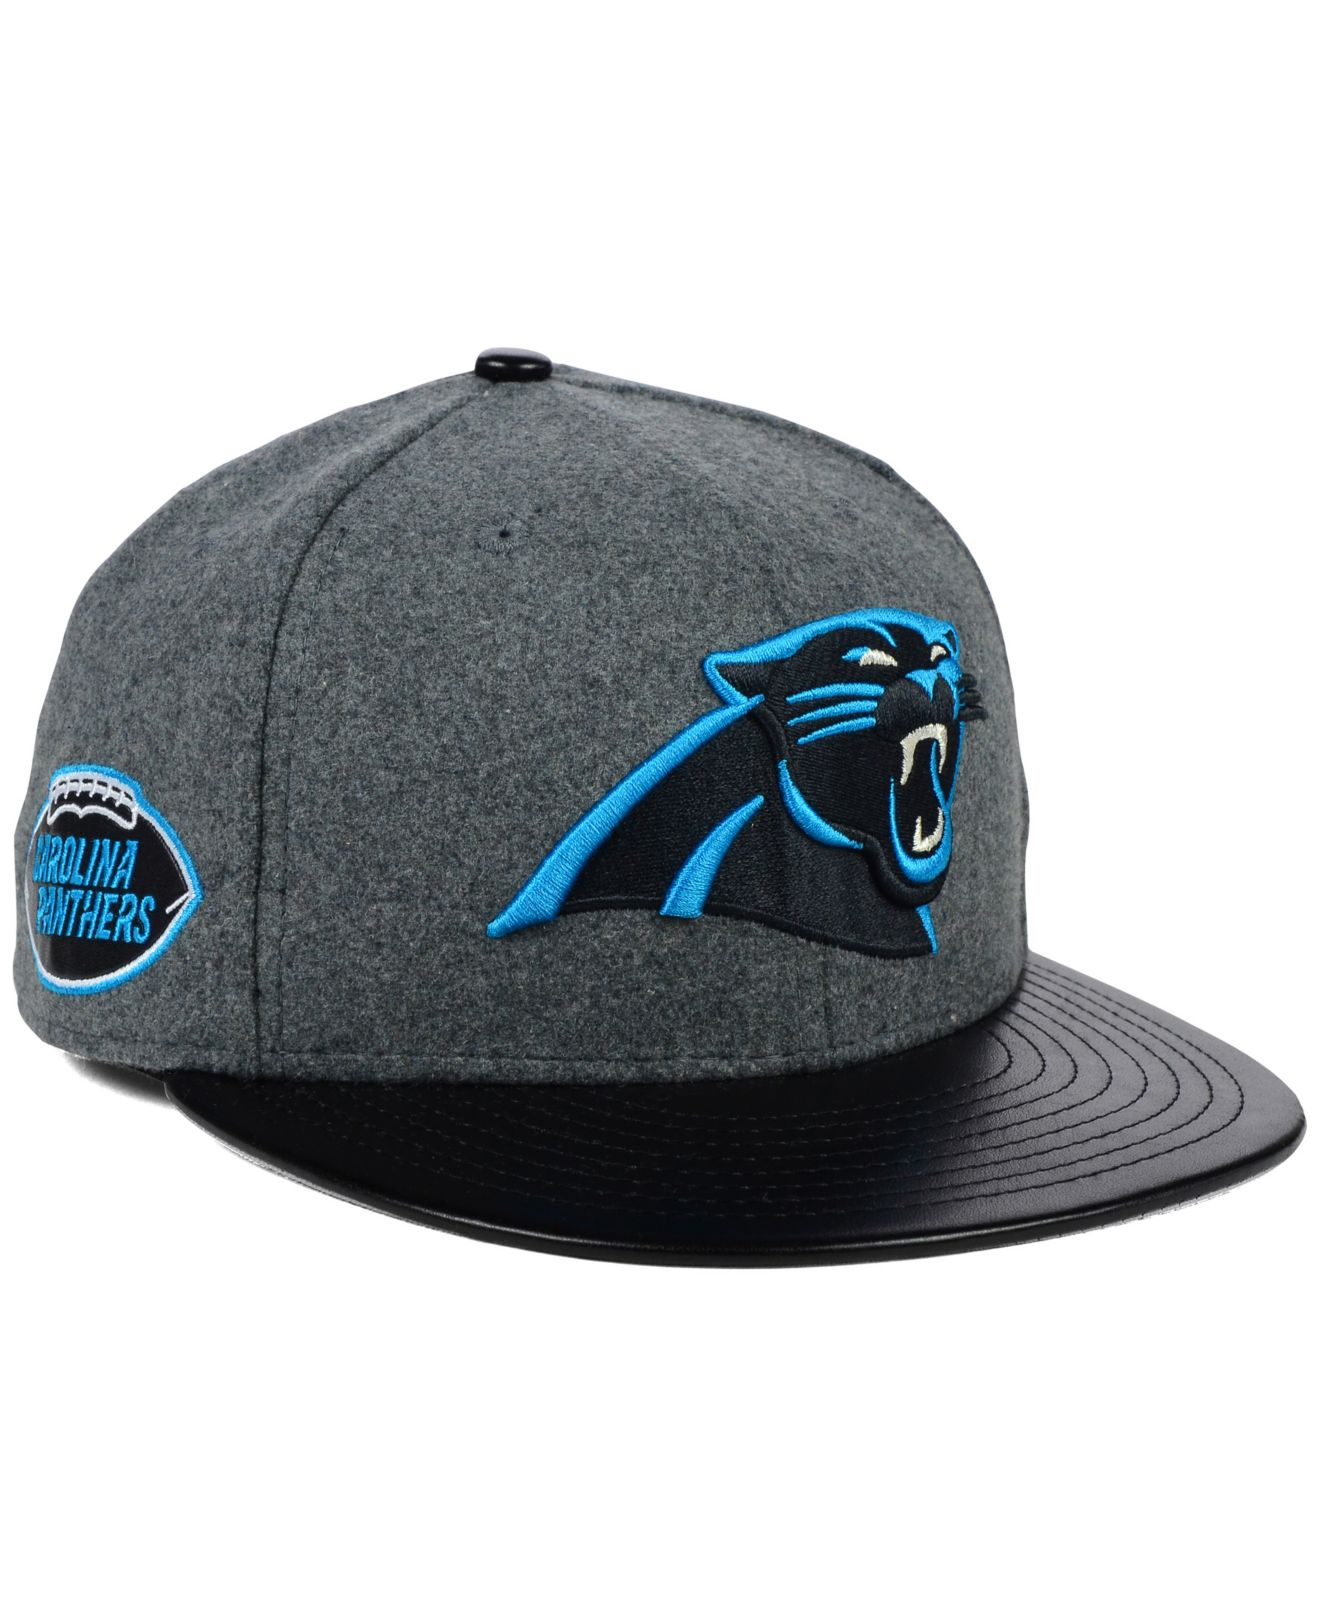 official store leather carolina panthers hat a54a9 28006 c77676be6